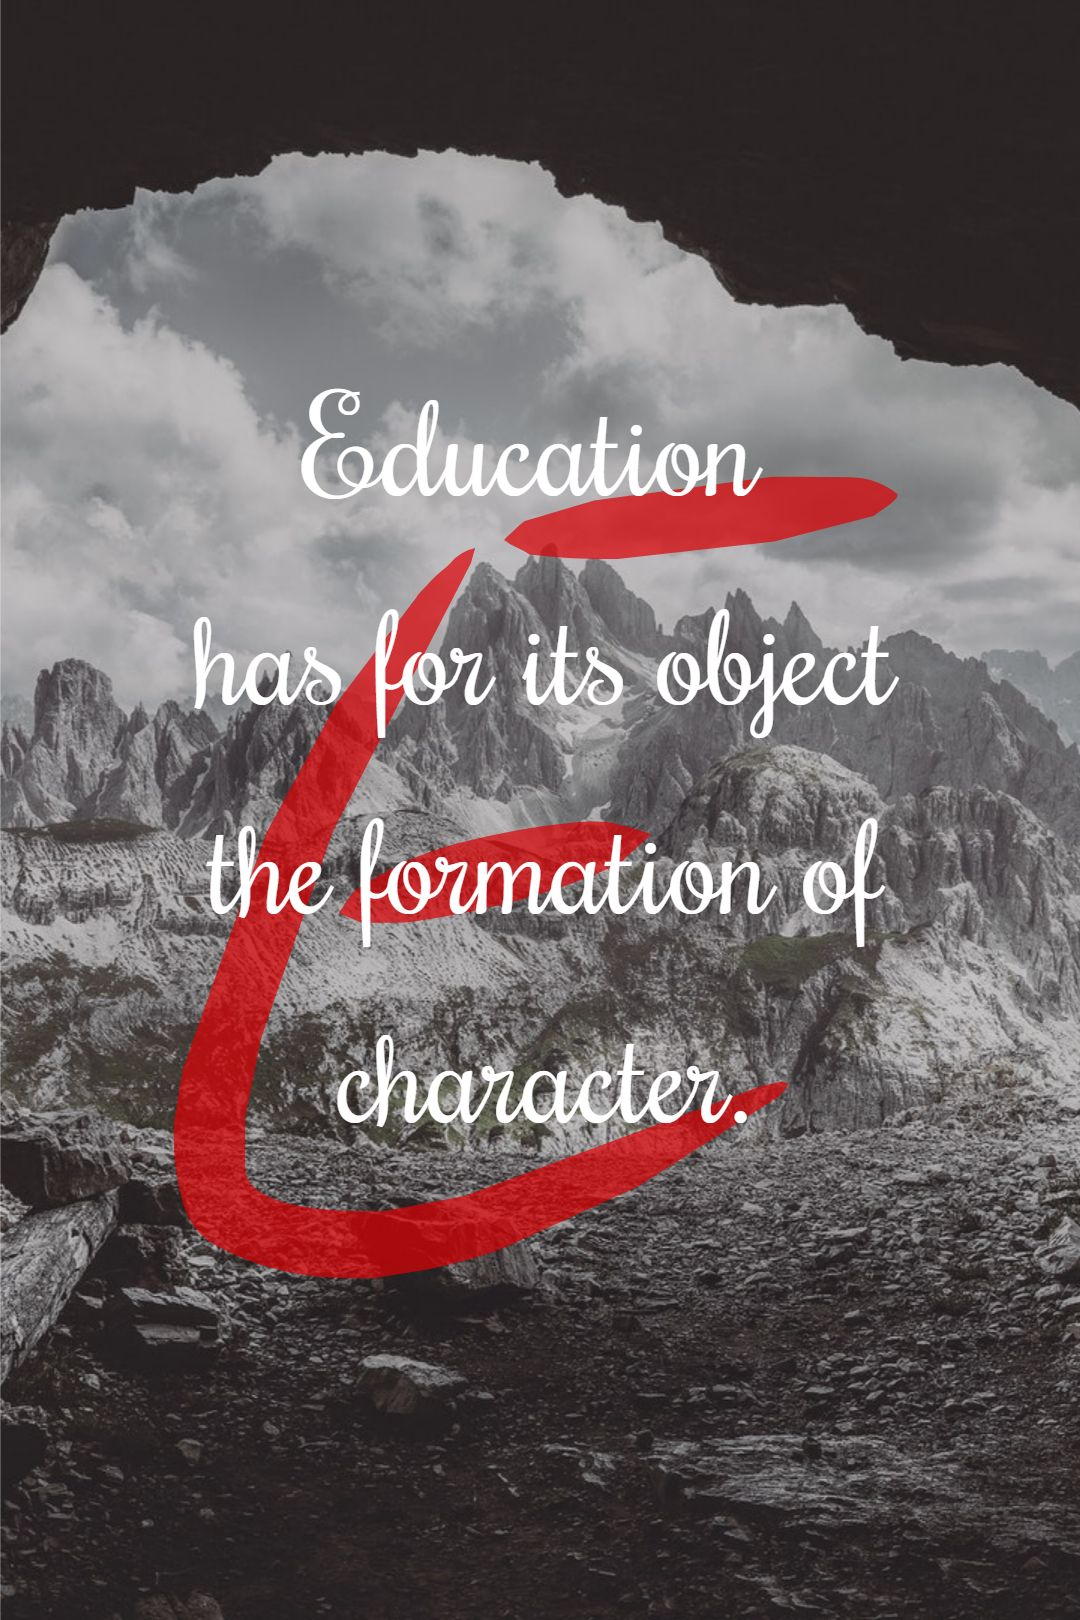 Quotes image of Education has for its object the formation of character.